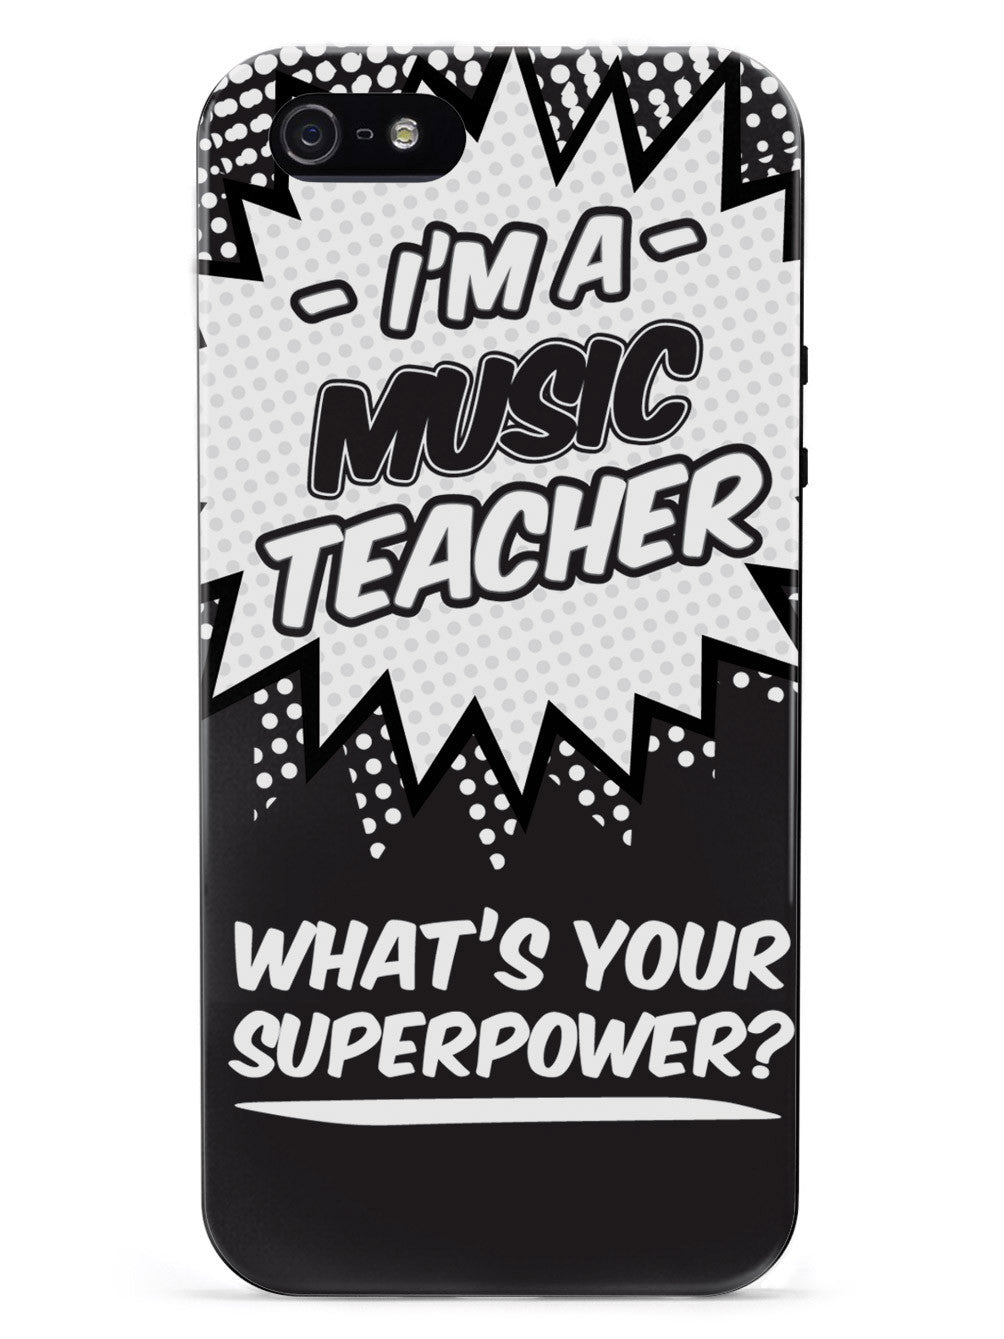 Music Teacher - What's Your Superpower? Case